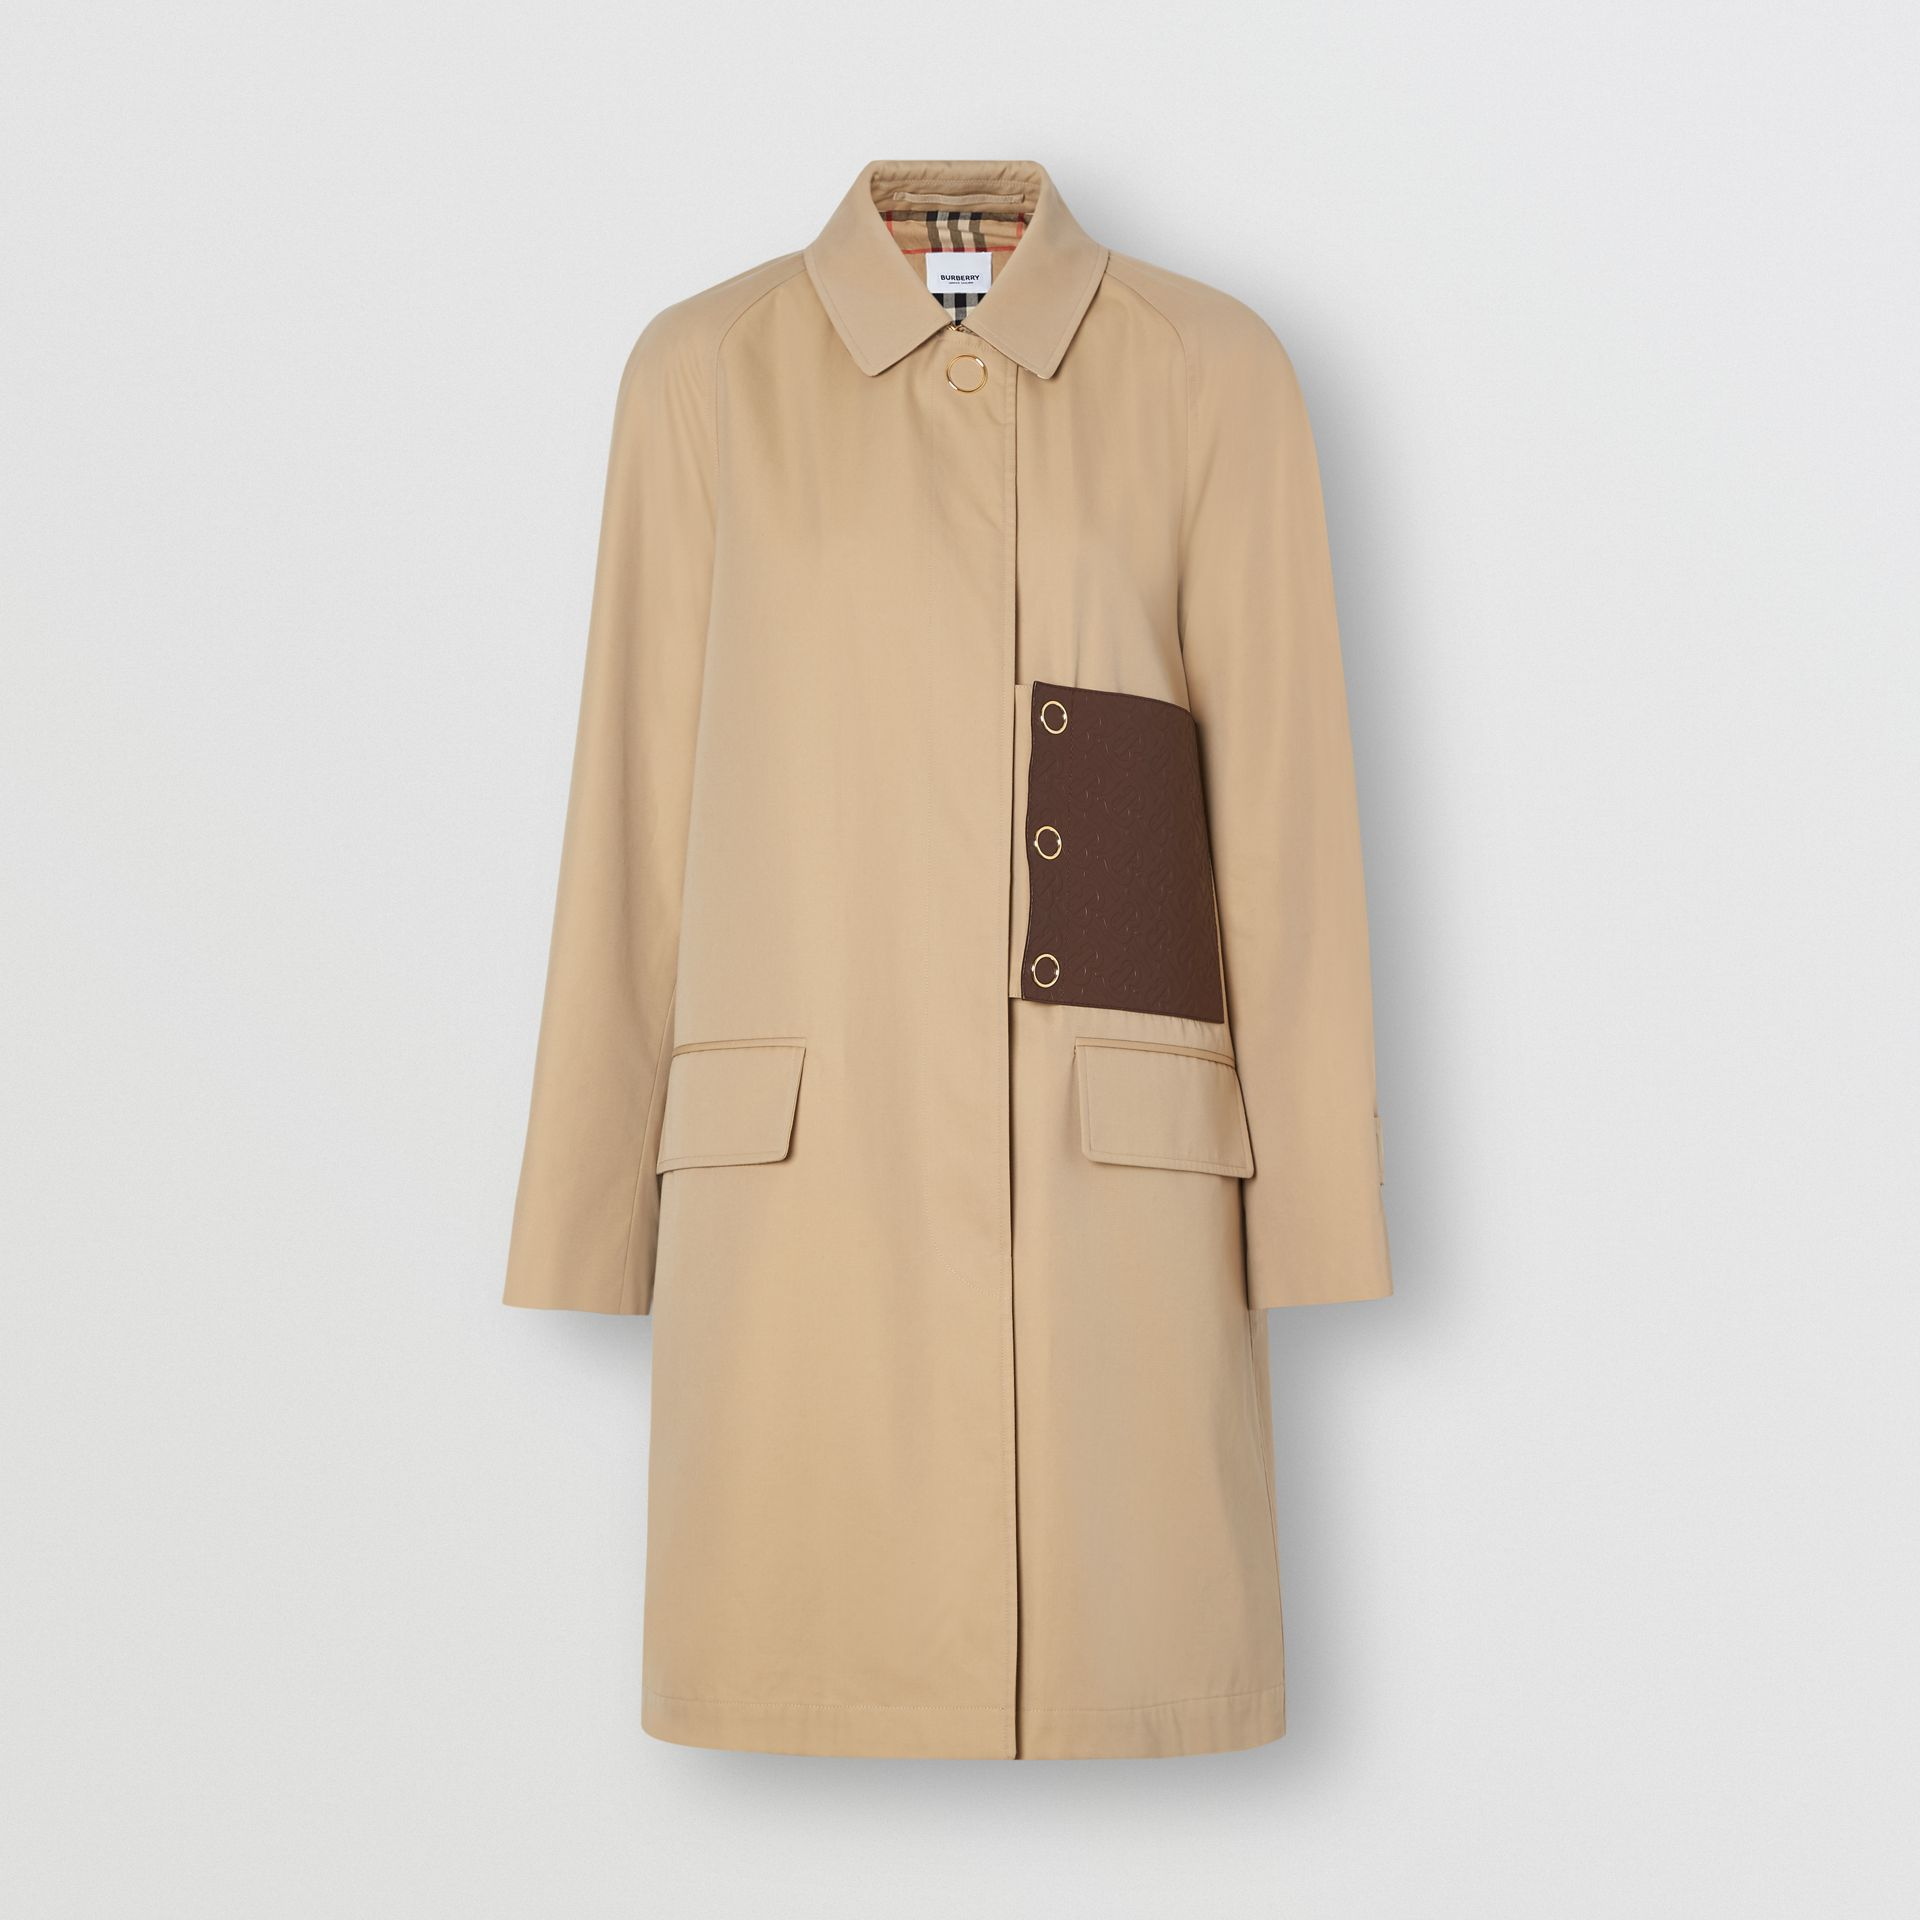 Monogram Leather Detail Cotton Gabardine Car Coat in Honey - Women | Burberry United Kingdom - gallery image 3